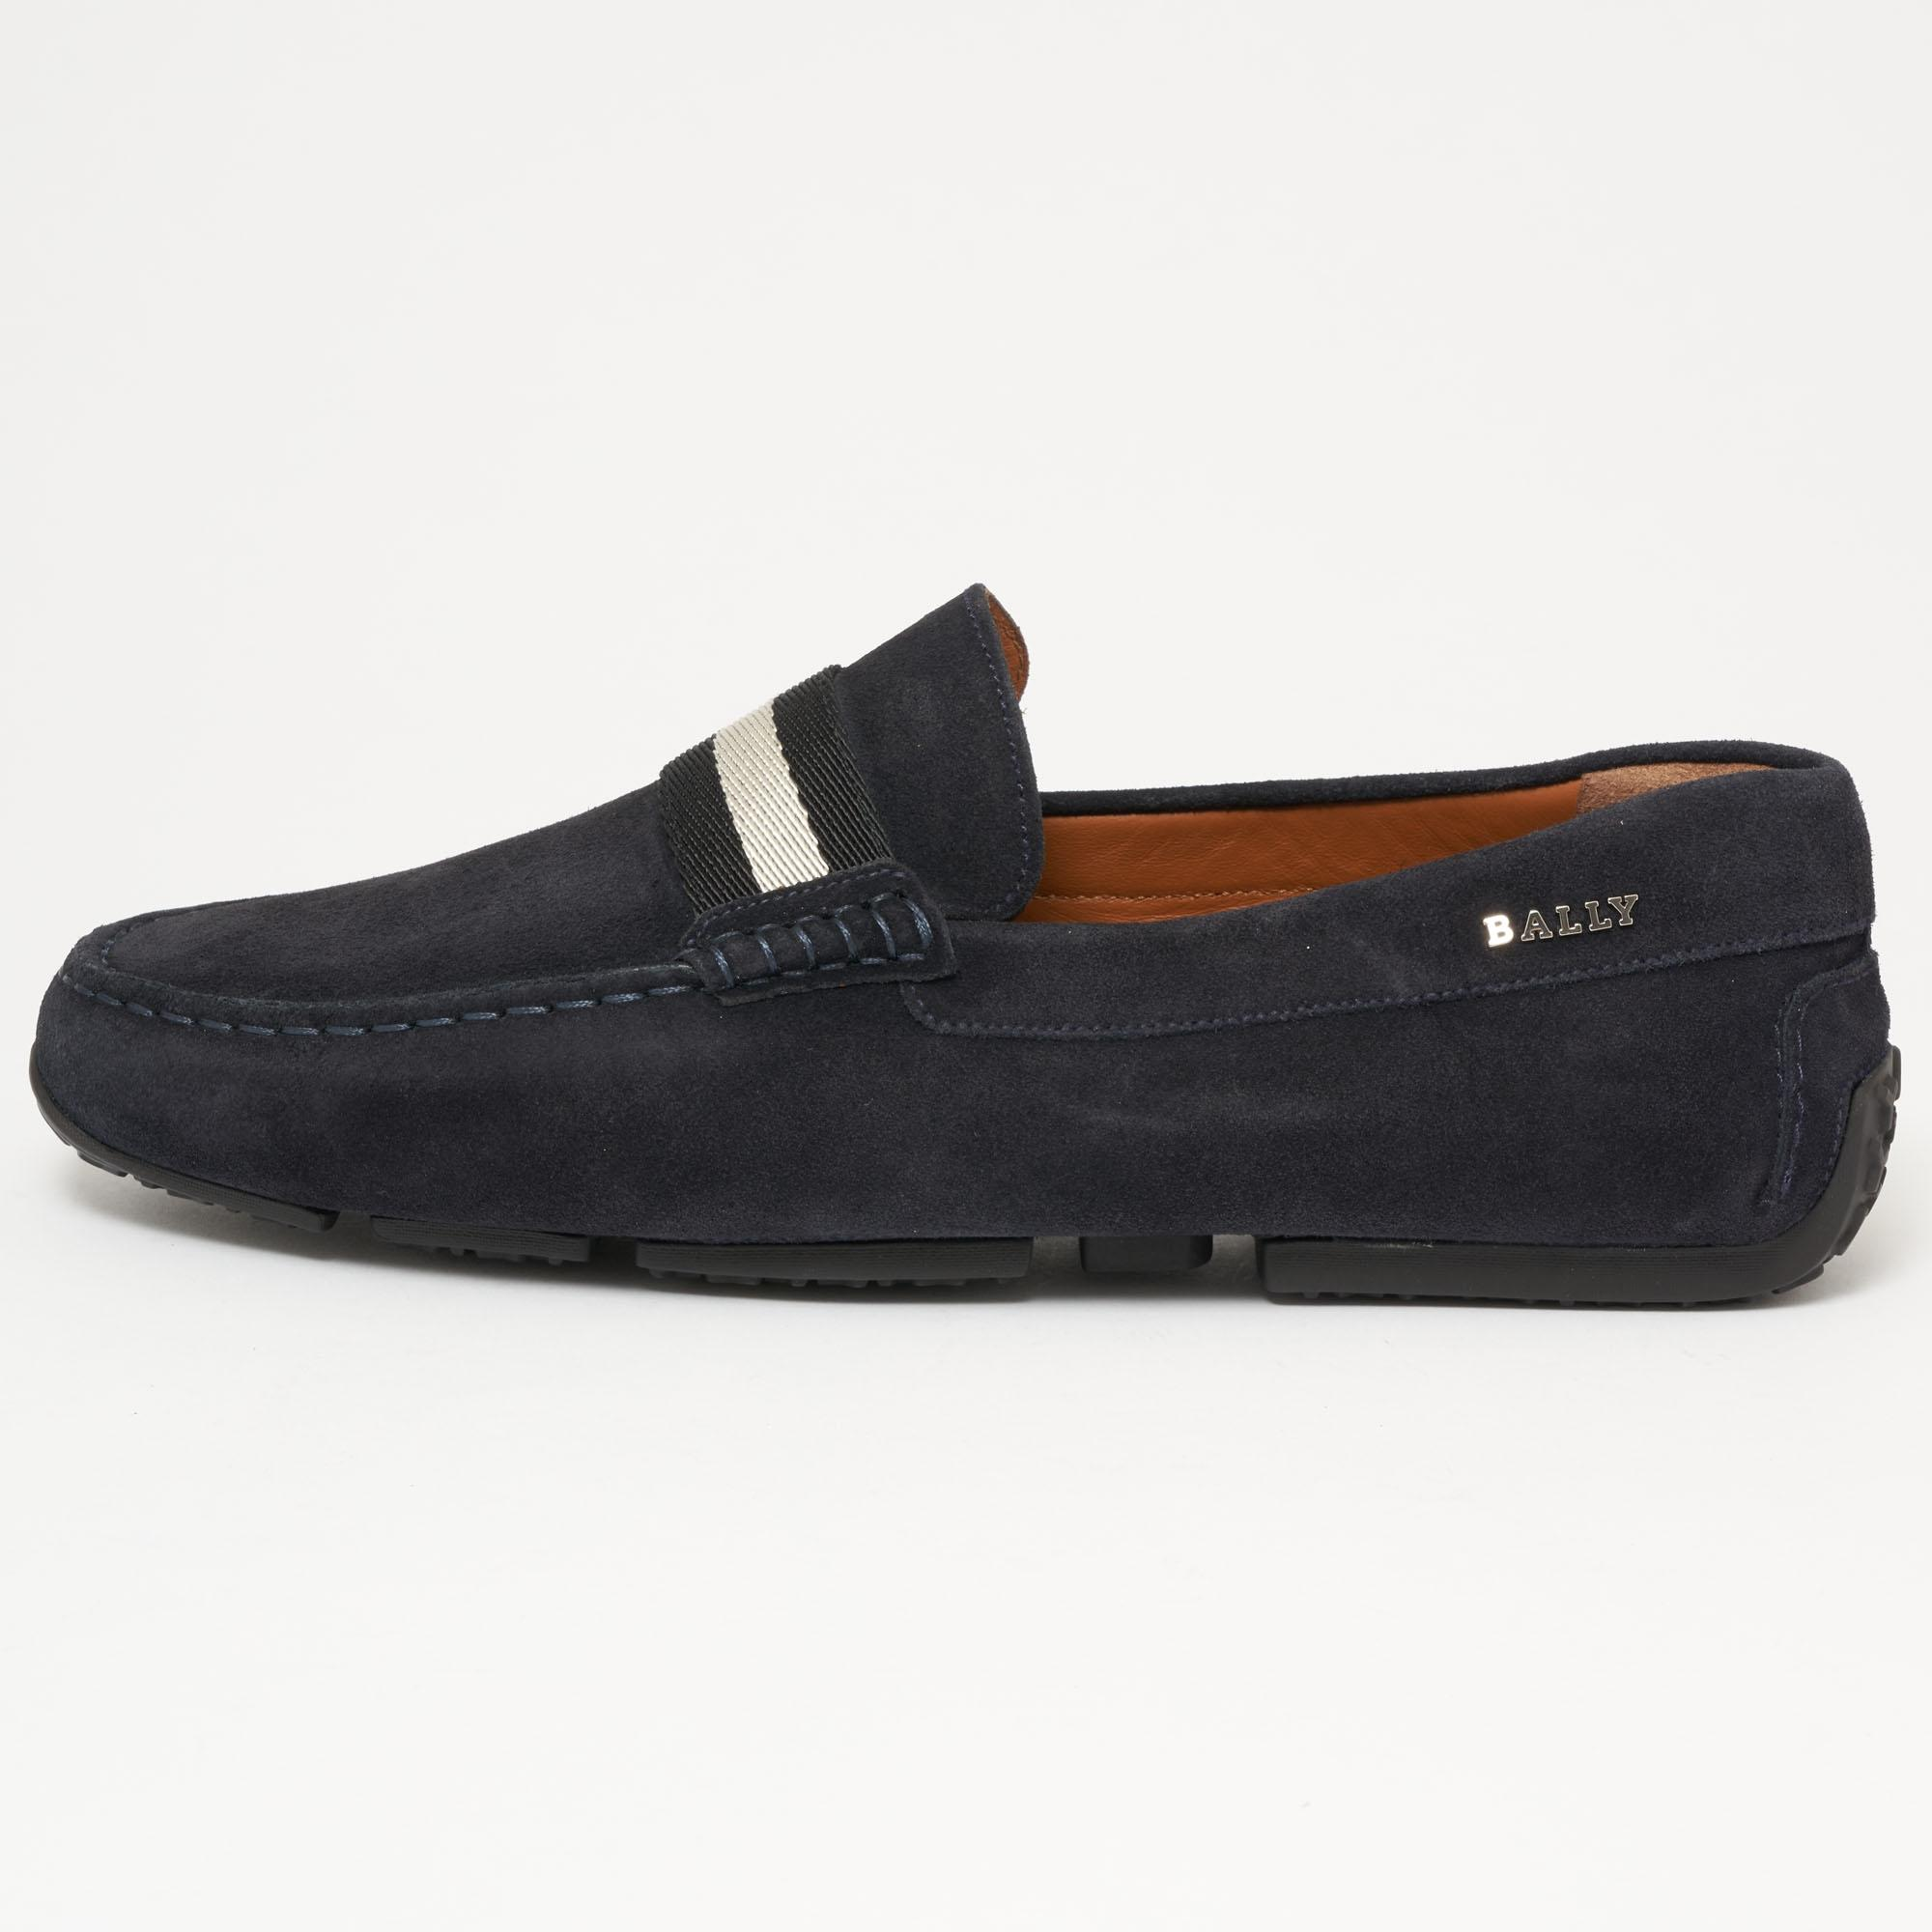 5f53d5fdcb5 Bally - Pearce Suede Driver - Blue Navy for Men - Lyst. View fullscreen